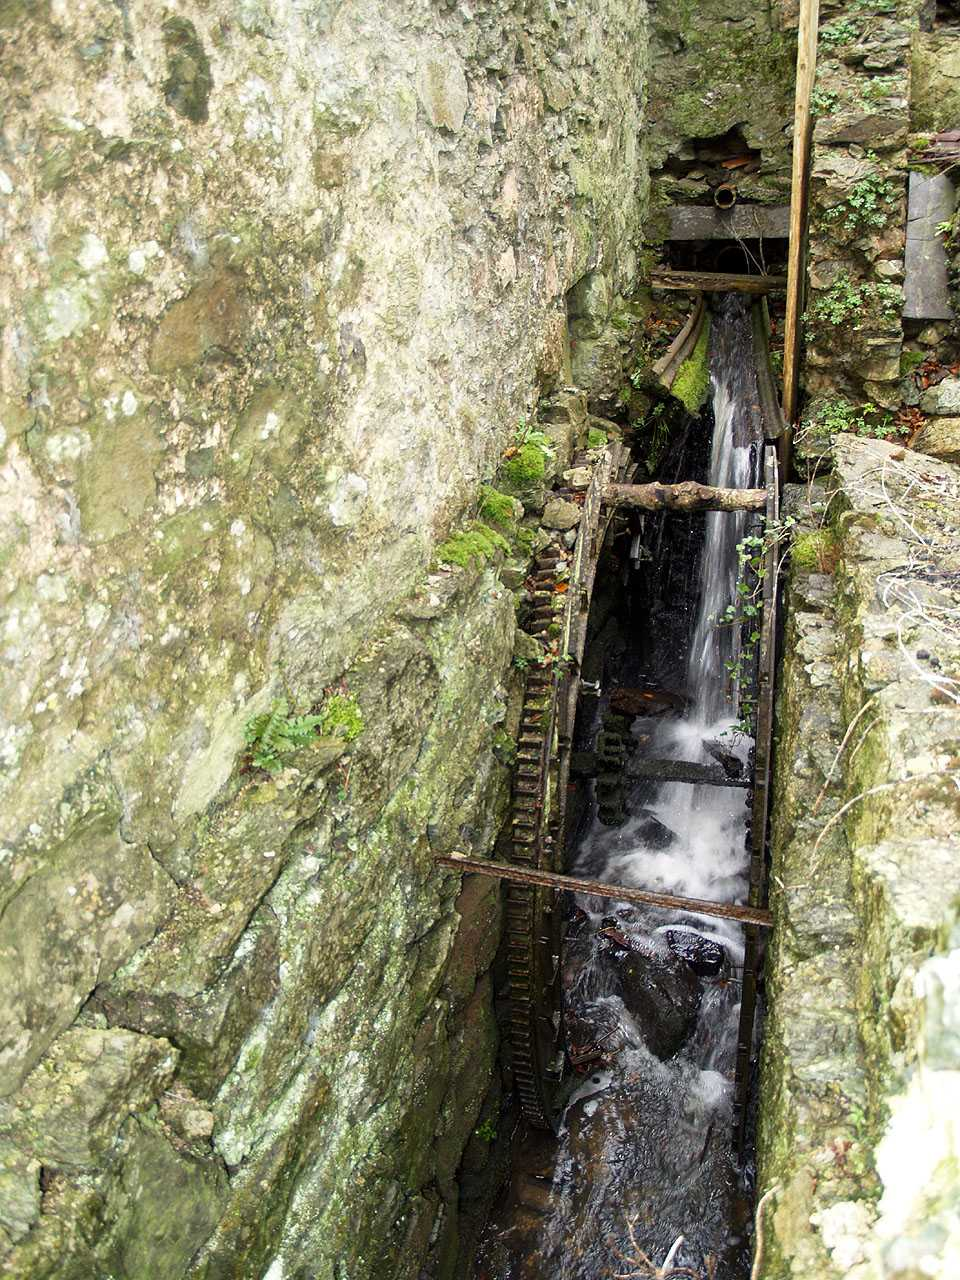 Anglesey, Llangefni Water Mill Wheel and Water